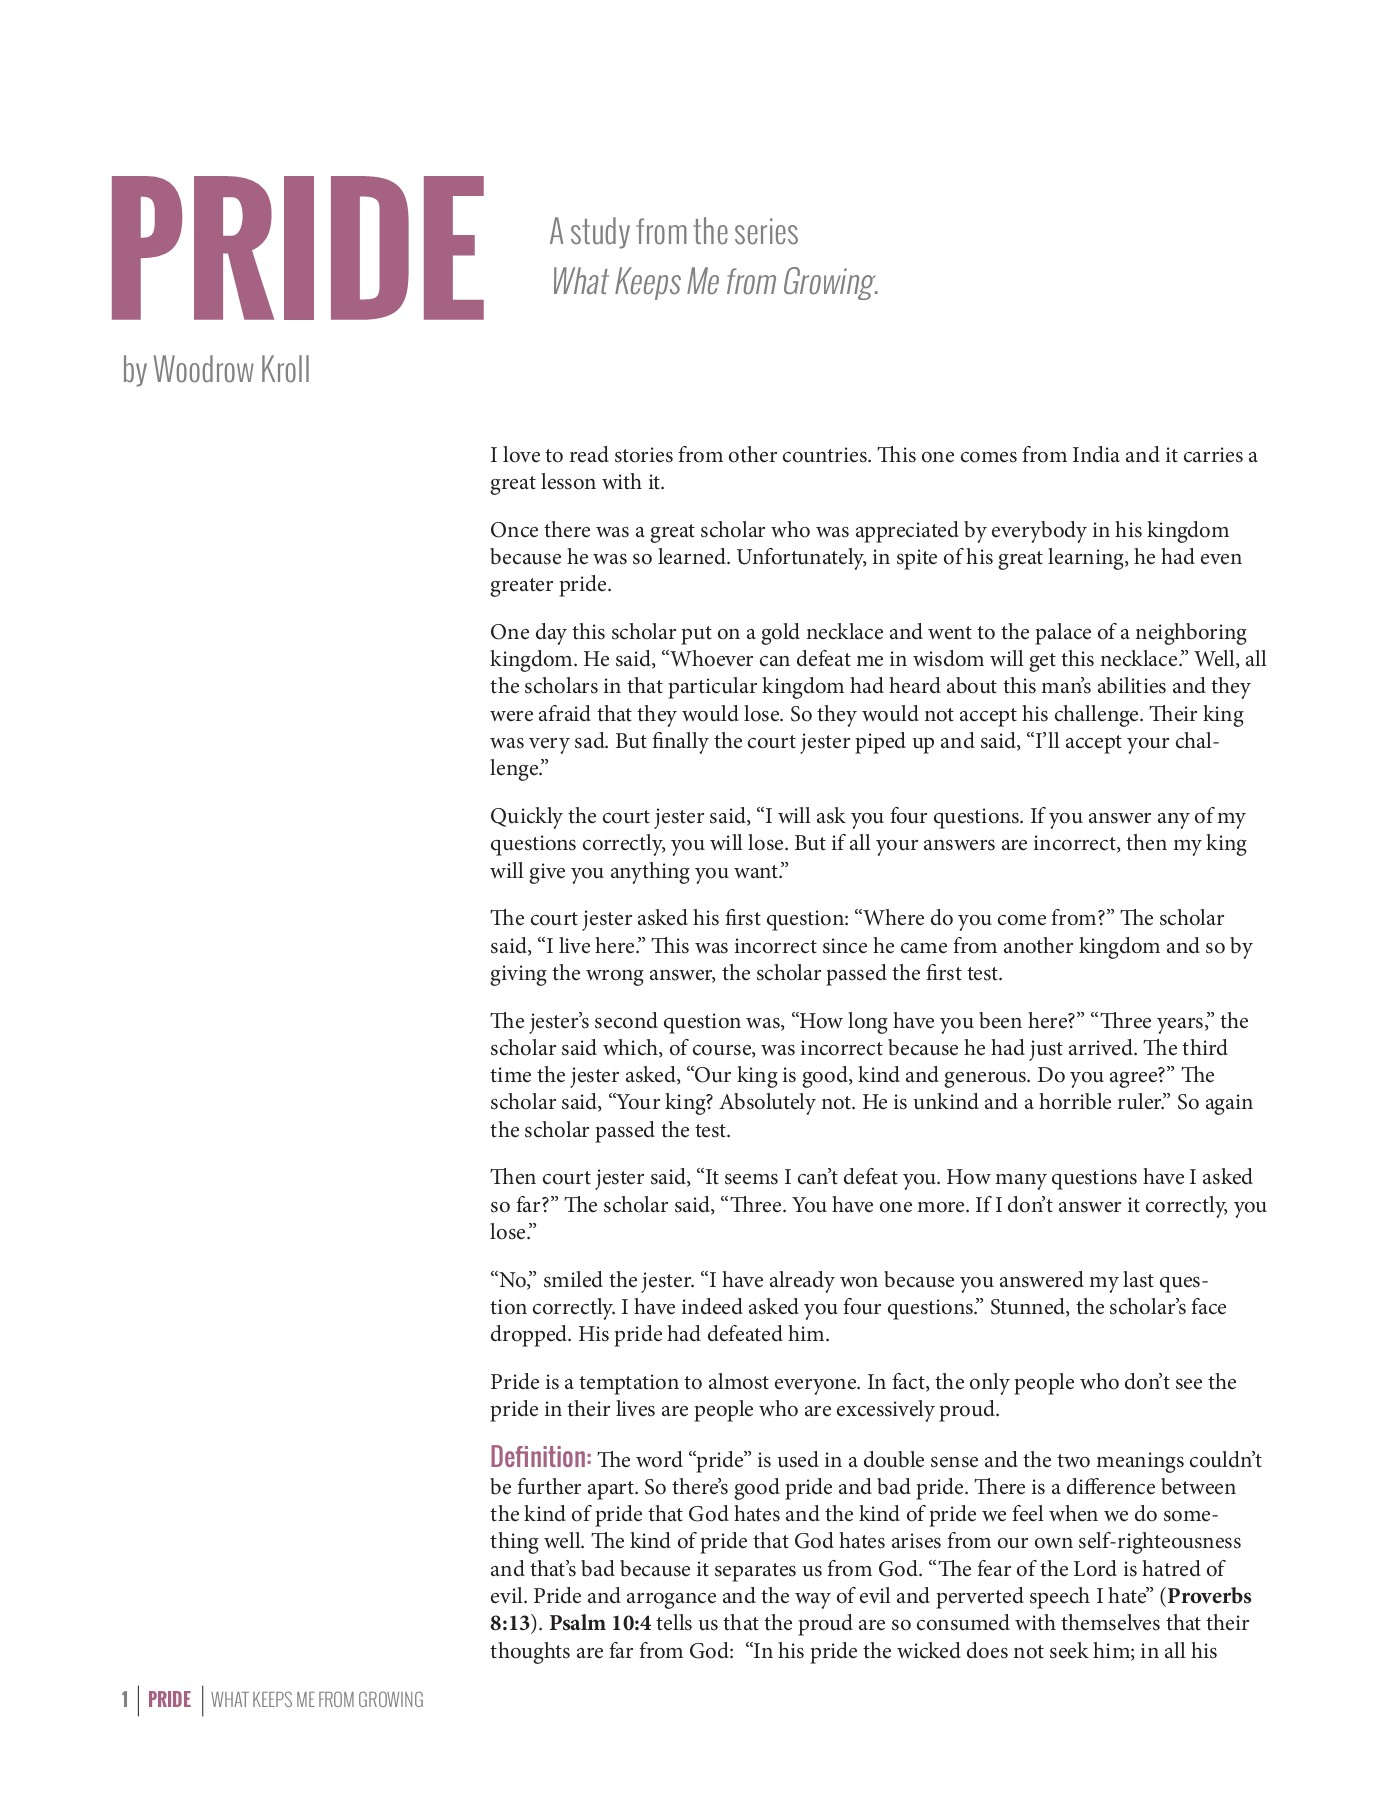 PRIDE - Back to the Bible Pages 1 - 5 - Text Version | AnyFlip